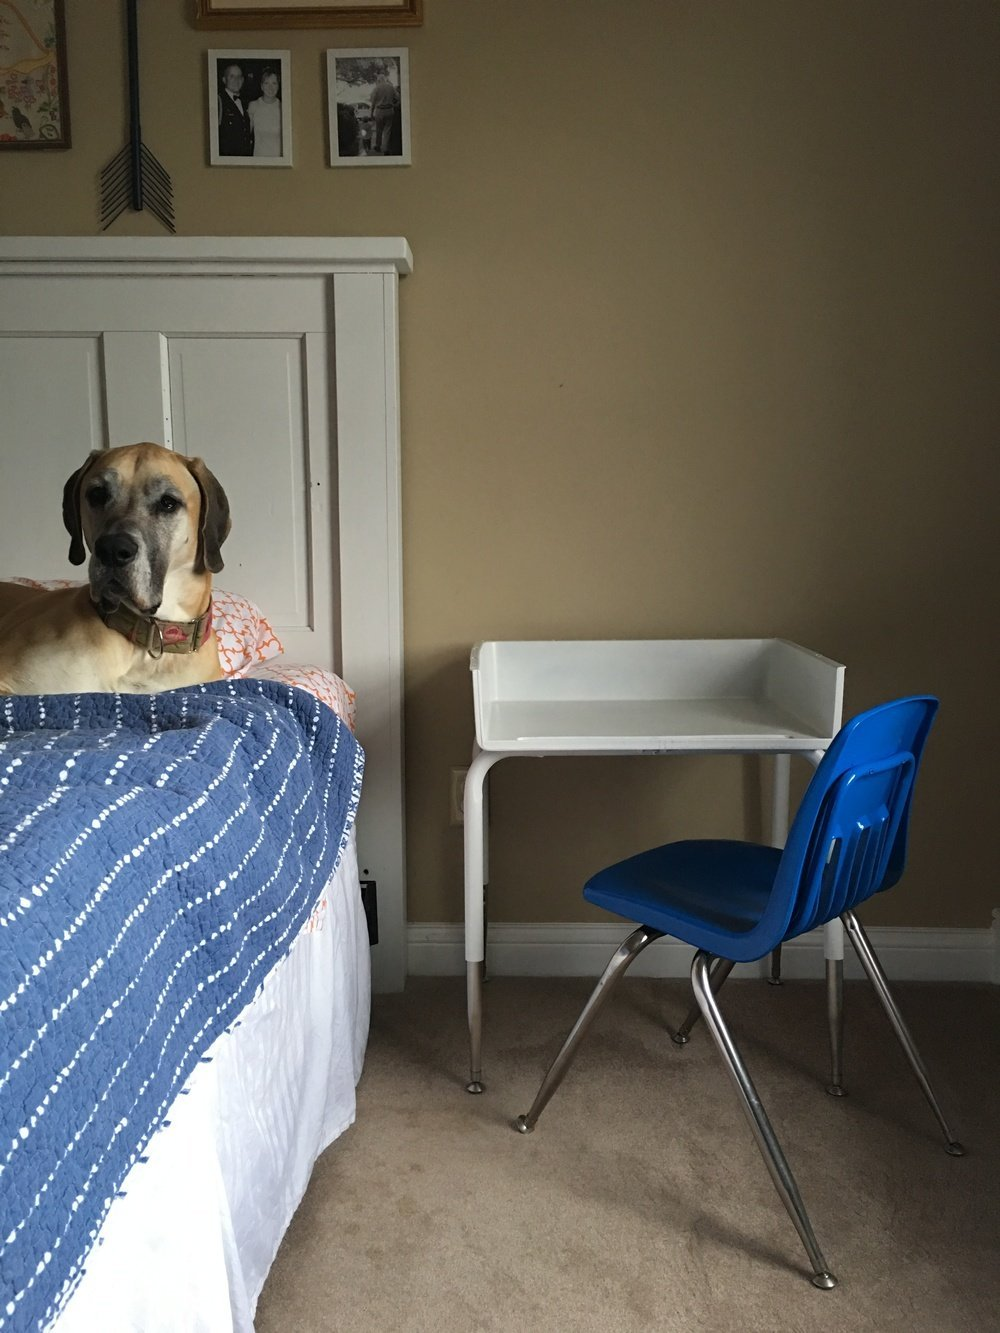 dog on bed next to kid's desk